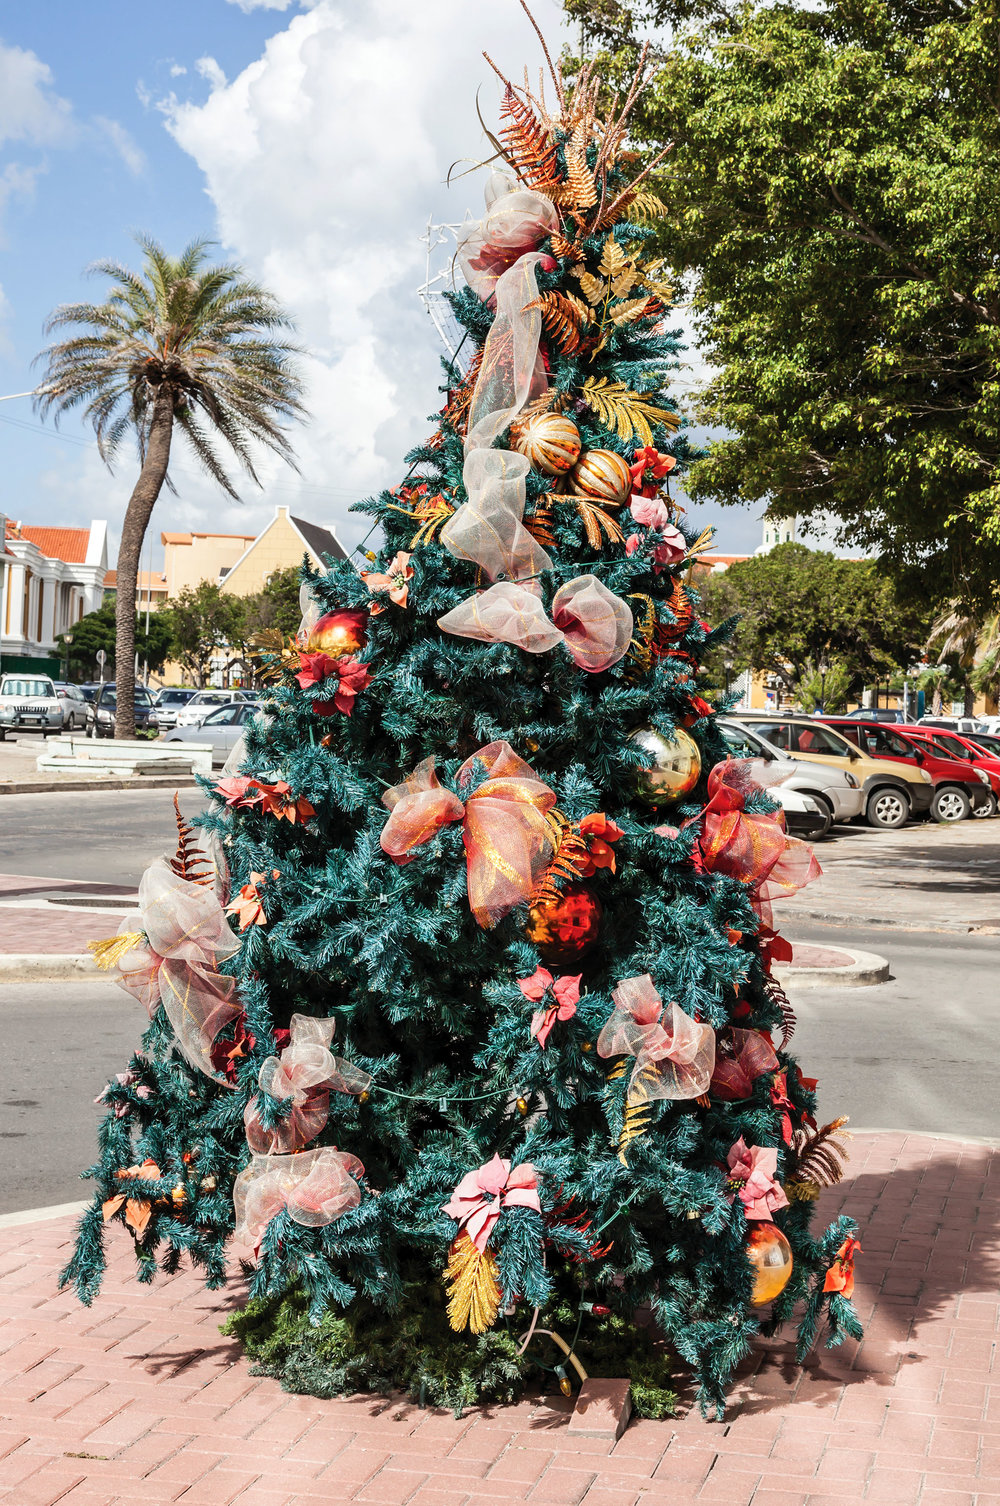 Christmas trees mingle with palm trees in Willemstad, Curaçao.